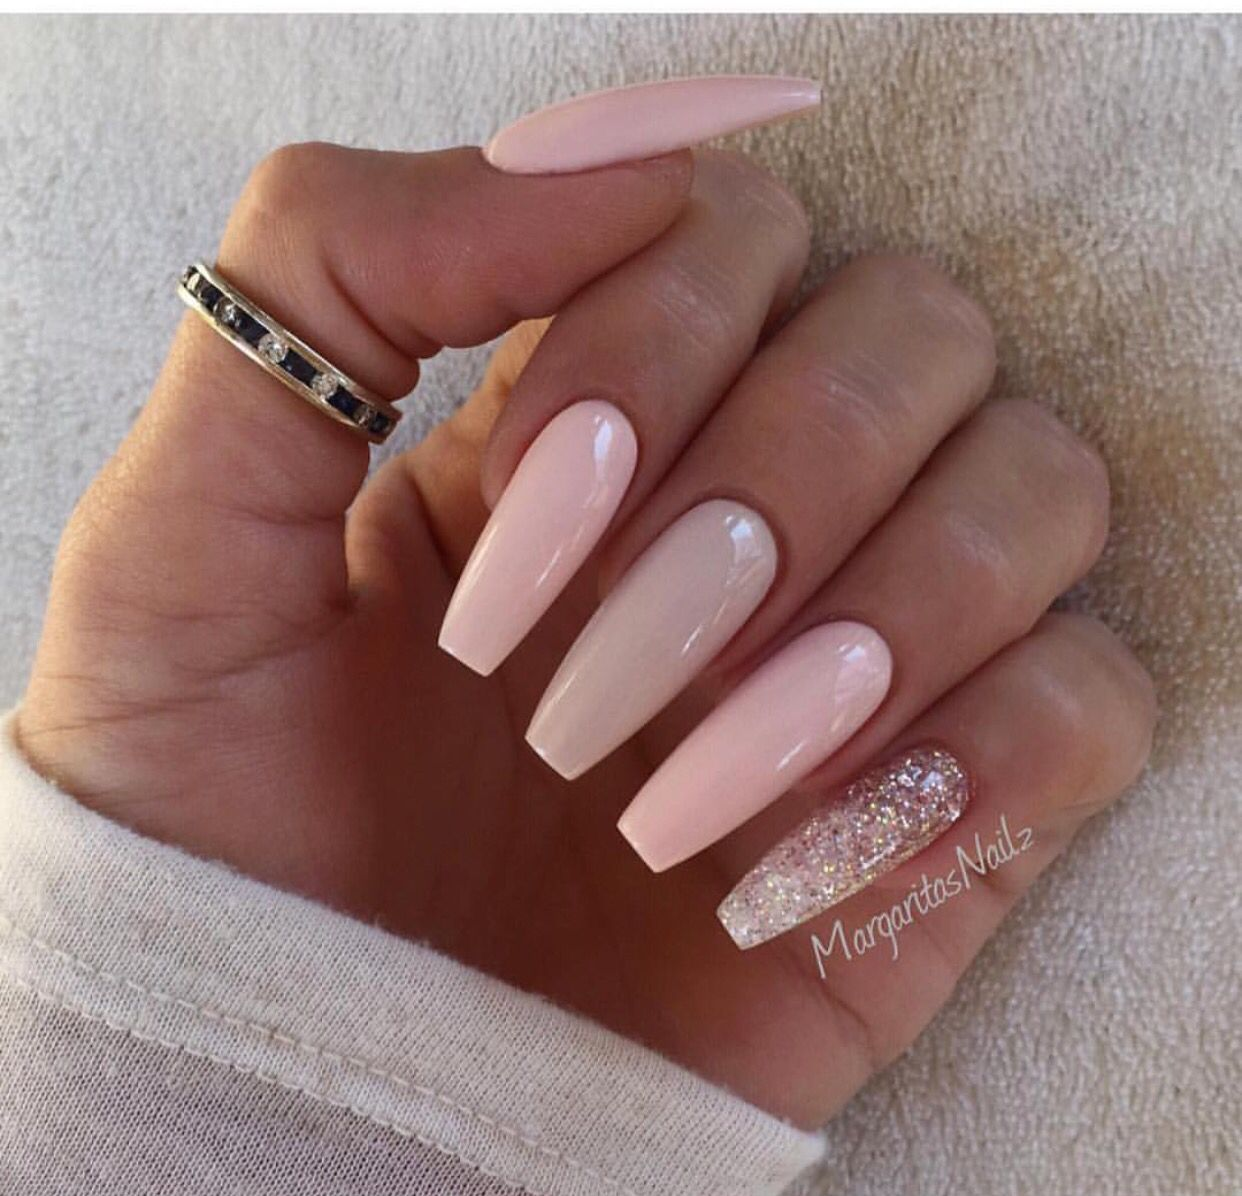 Coffin nails | My | Pinterest | Coffin nails, Nail inspo and ...